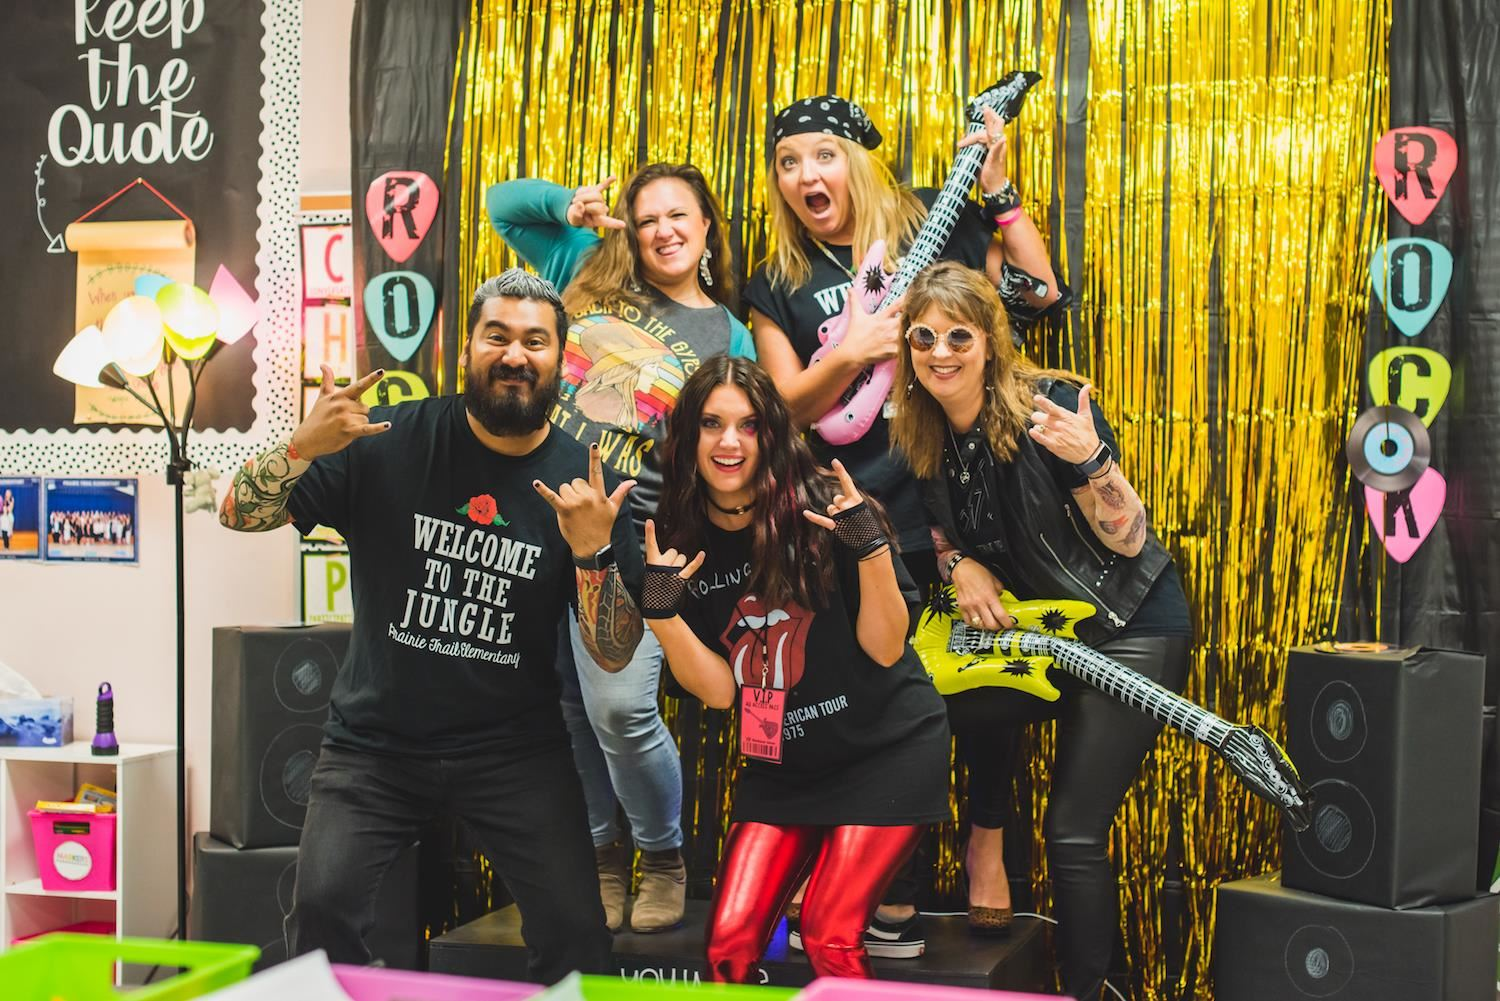 Five teachers dressed as rockstars